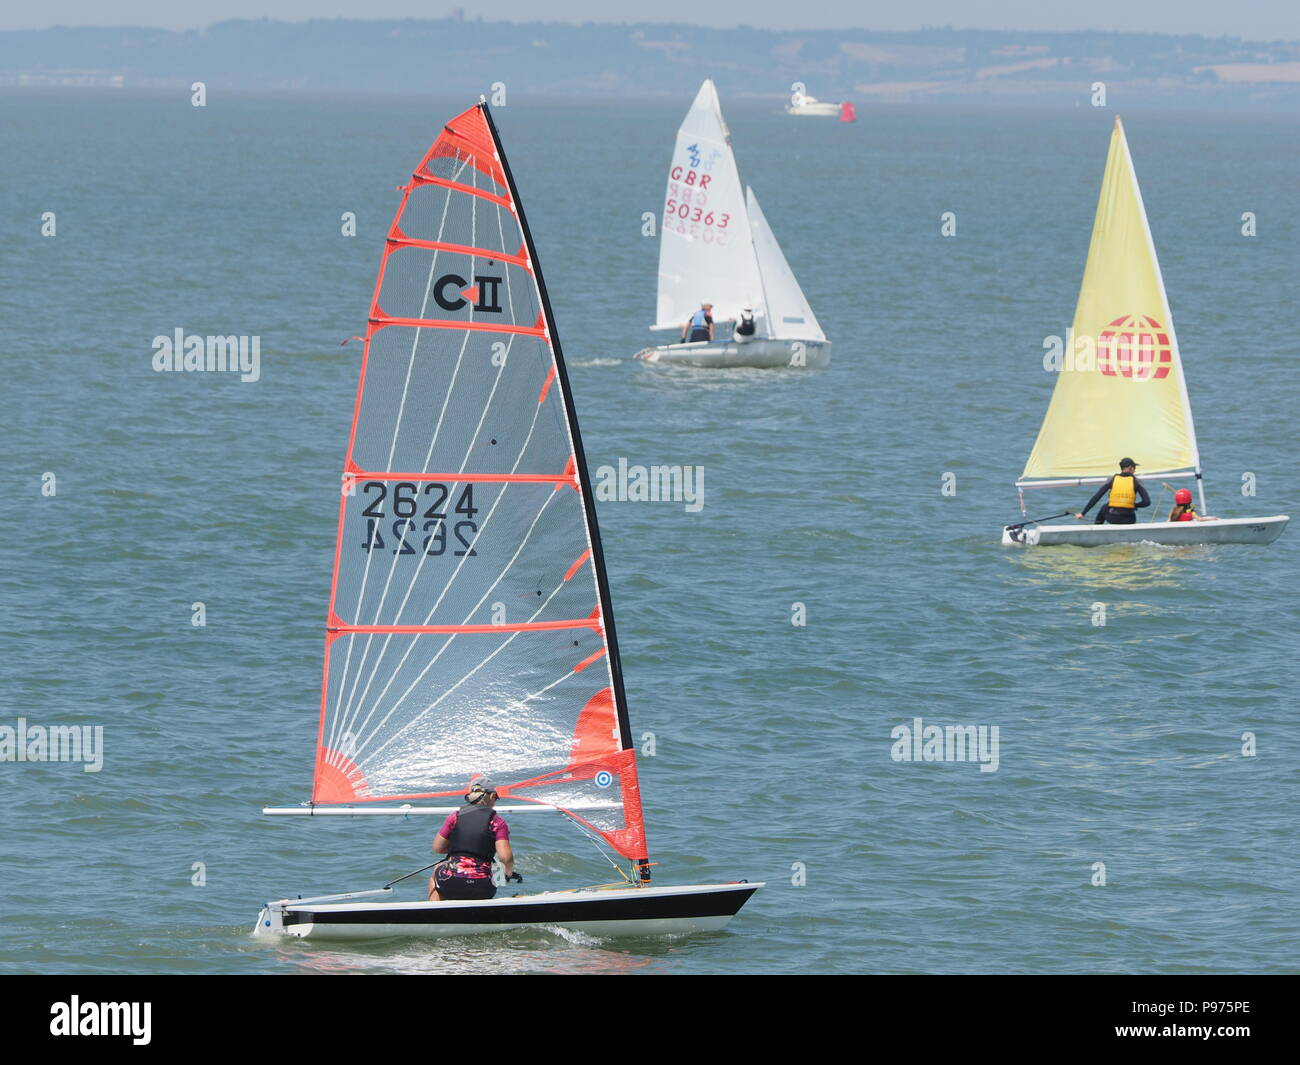 Sheerness, Kent, UK. 15th July, 2018. UK Weather: a sunny, dry and warm day at midday on St. Swithin's Day as members of the Isle of Sheppey Sailing Club take to the waters of the Thames Estuary off Sheerness in Kent. Credit: James Bell/Alamy Live News - Stock Image